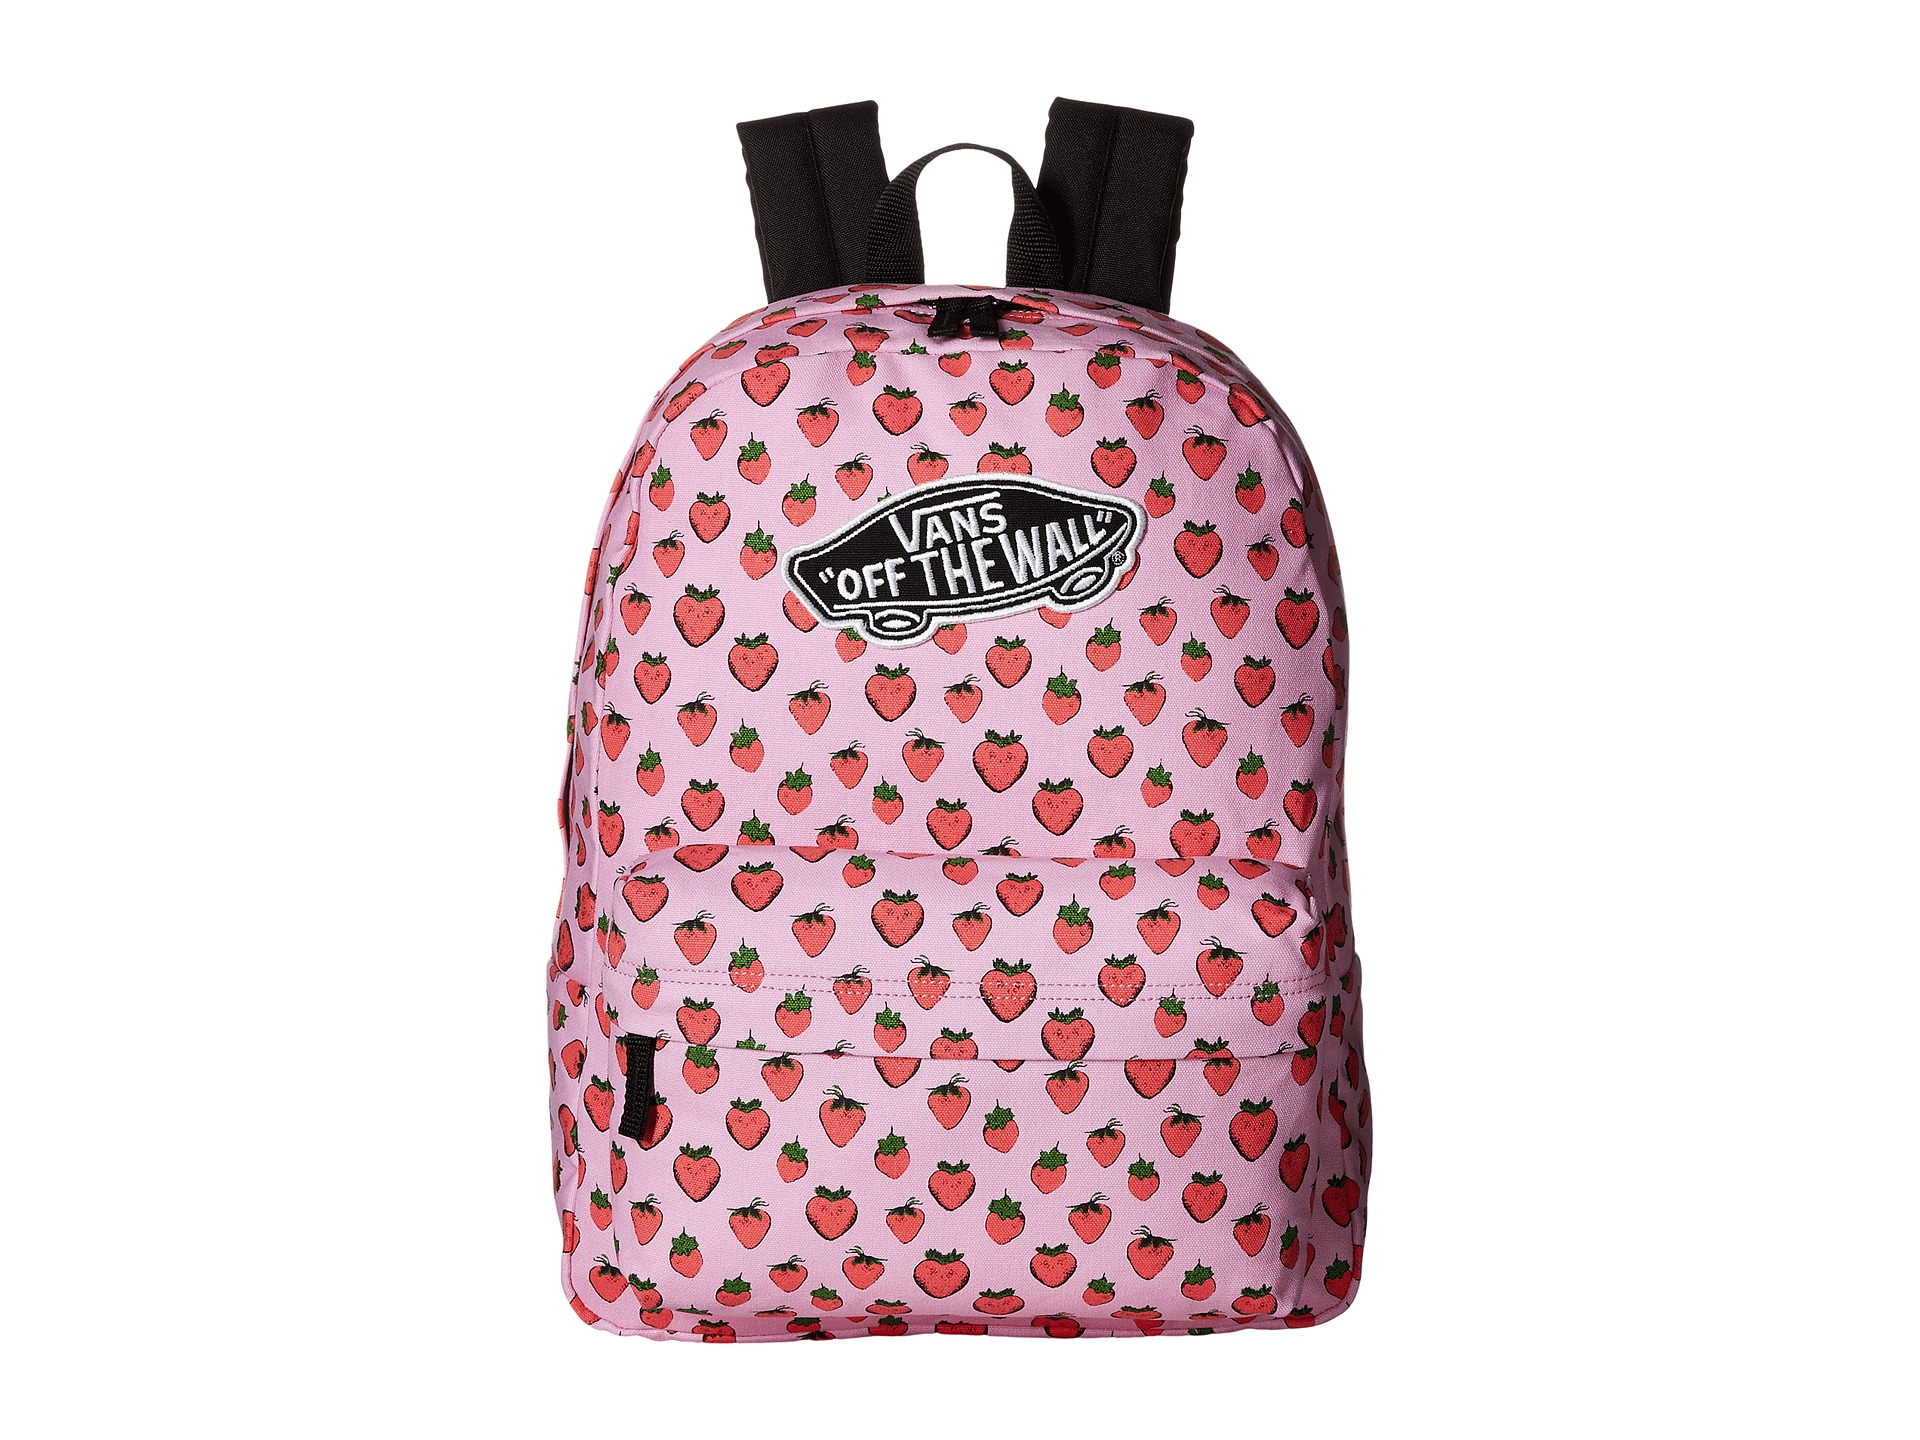 0a6770a3f Vans Mini Backpack Size- Fenix Toulouse Handball